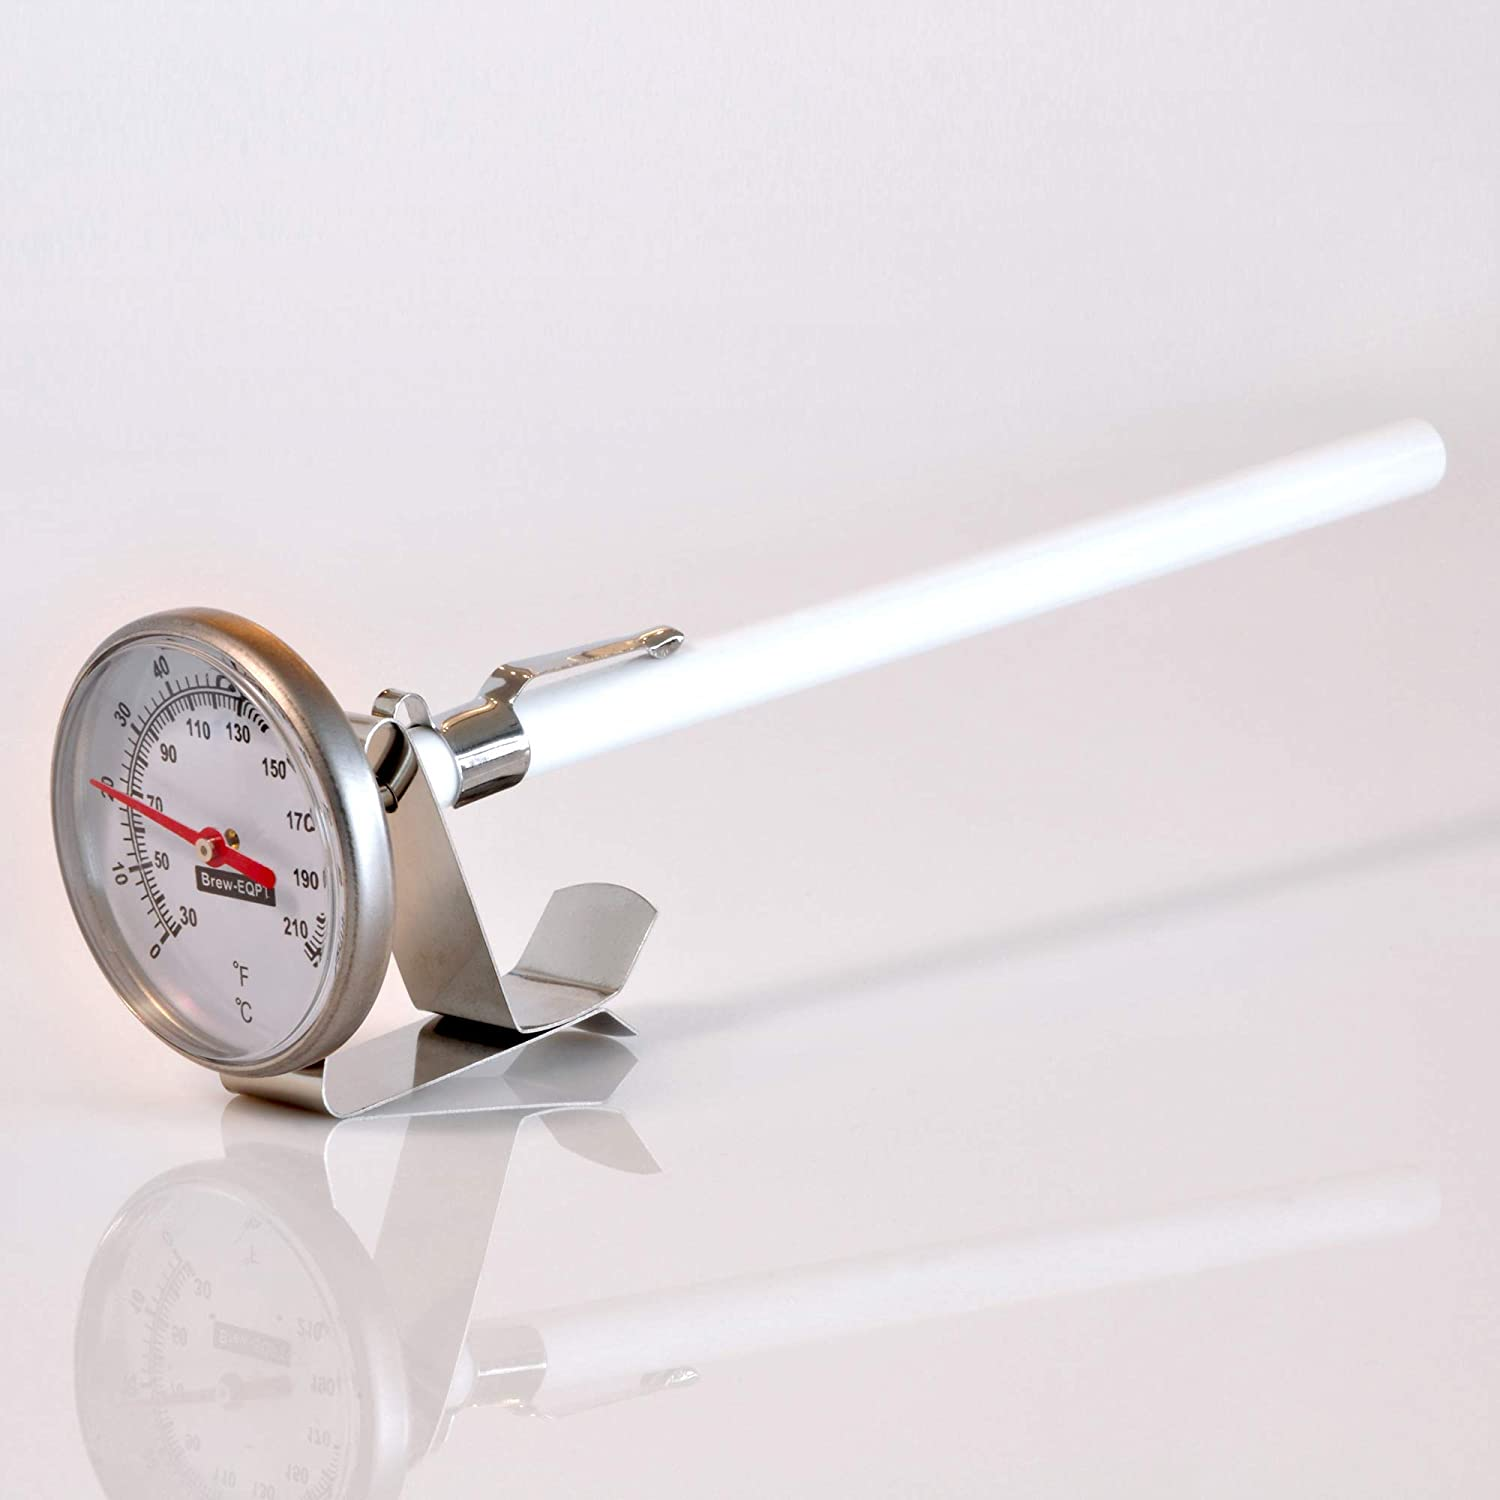 Kitchen Thermometer with Stainless Steel Probe and Clip for Meat, Milk Froth, or Homebrewing - 6 inch